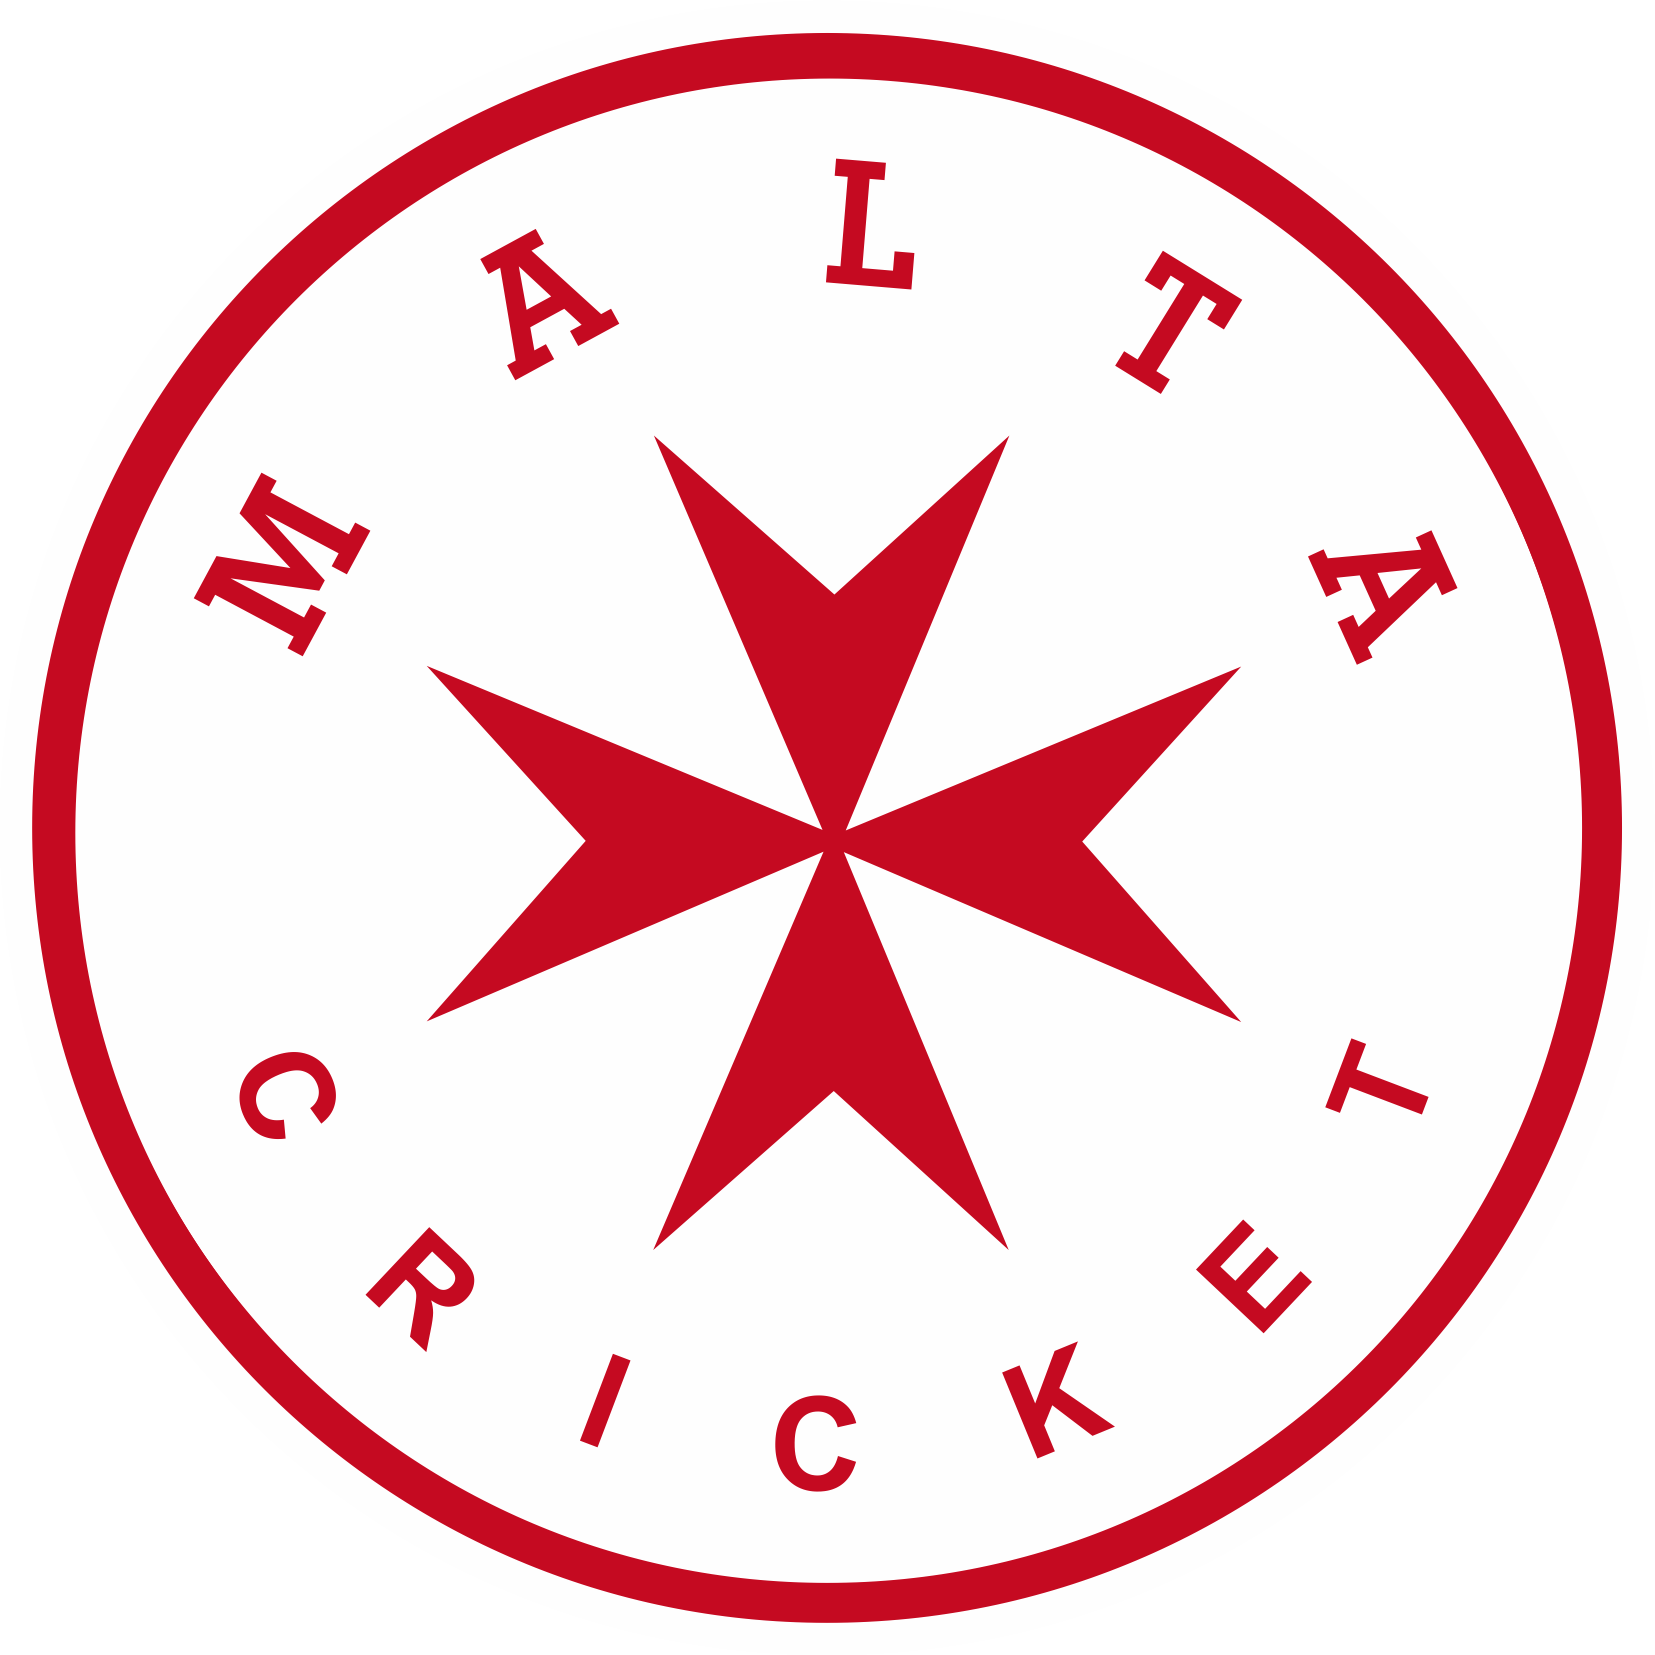 Malta Cricket Association